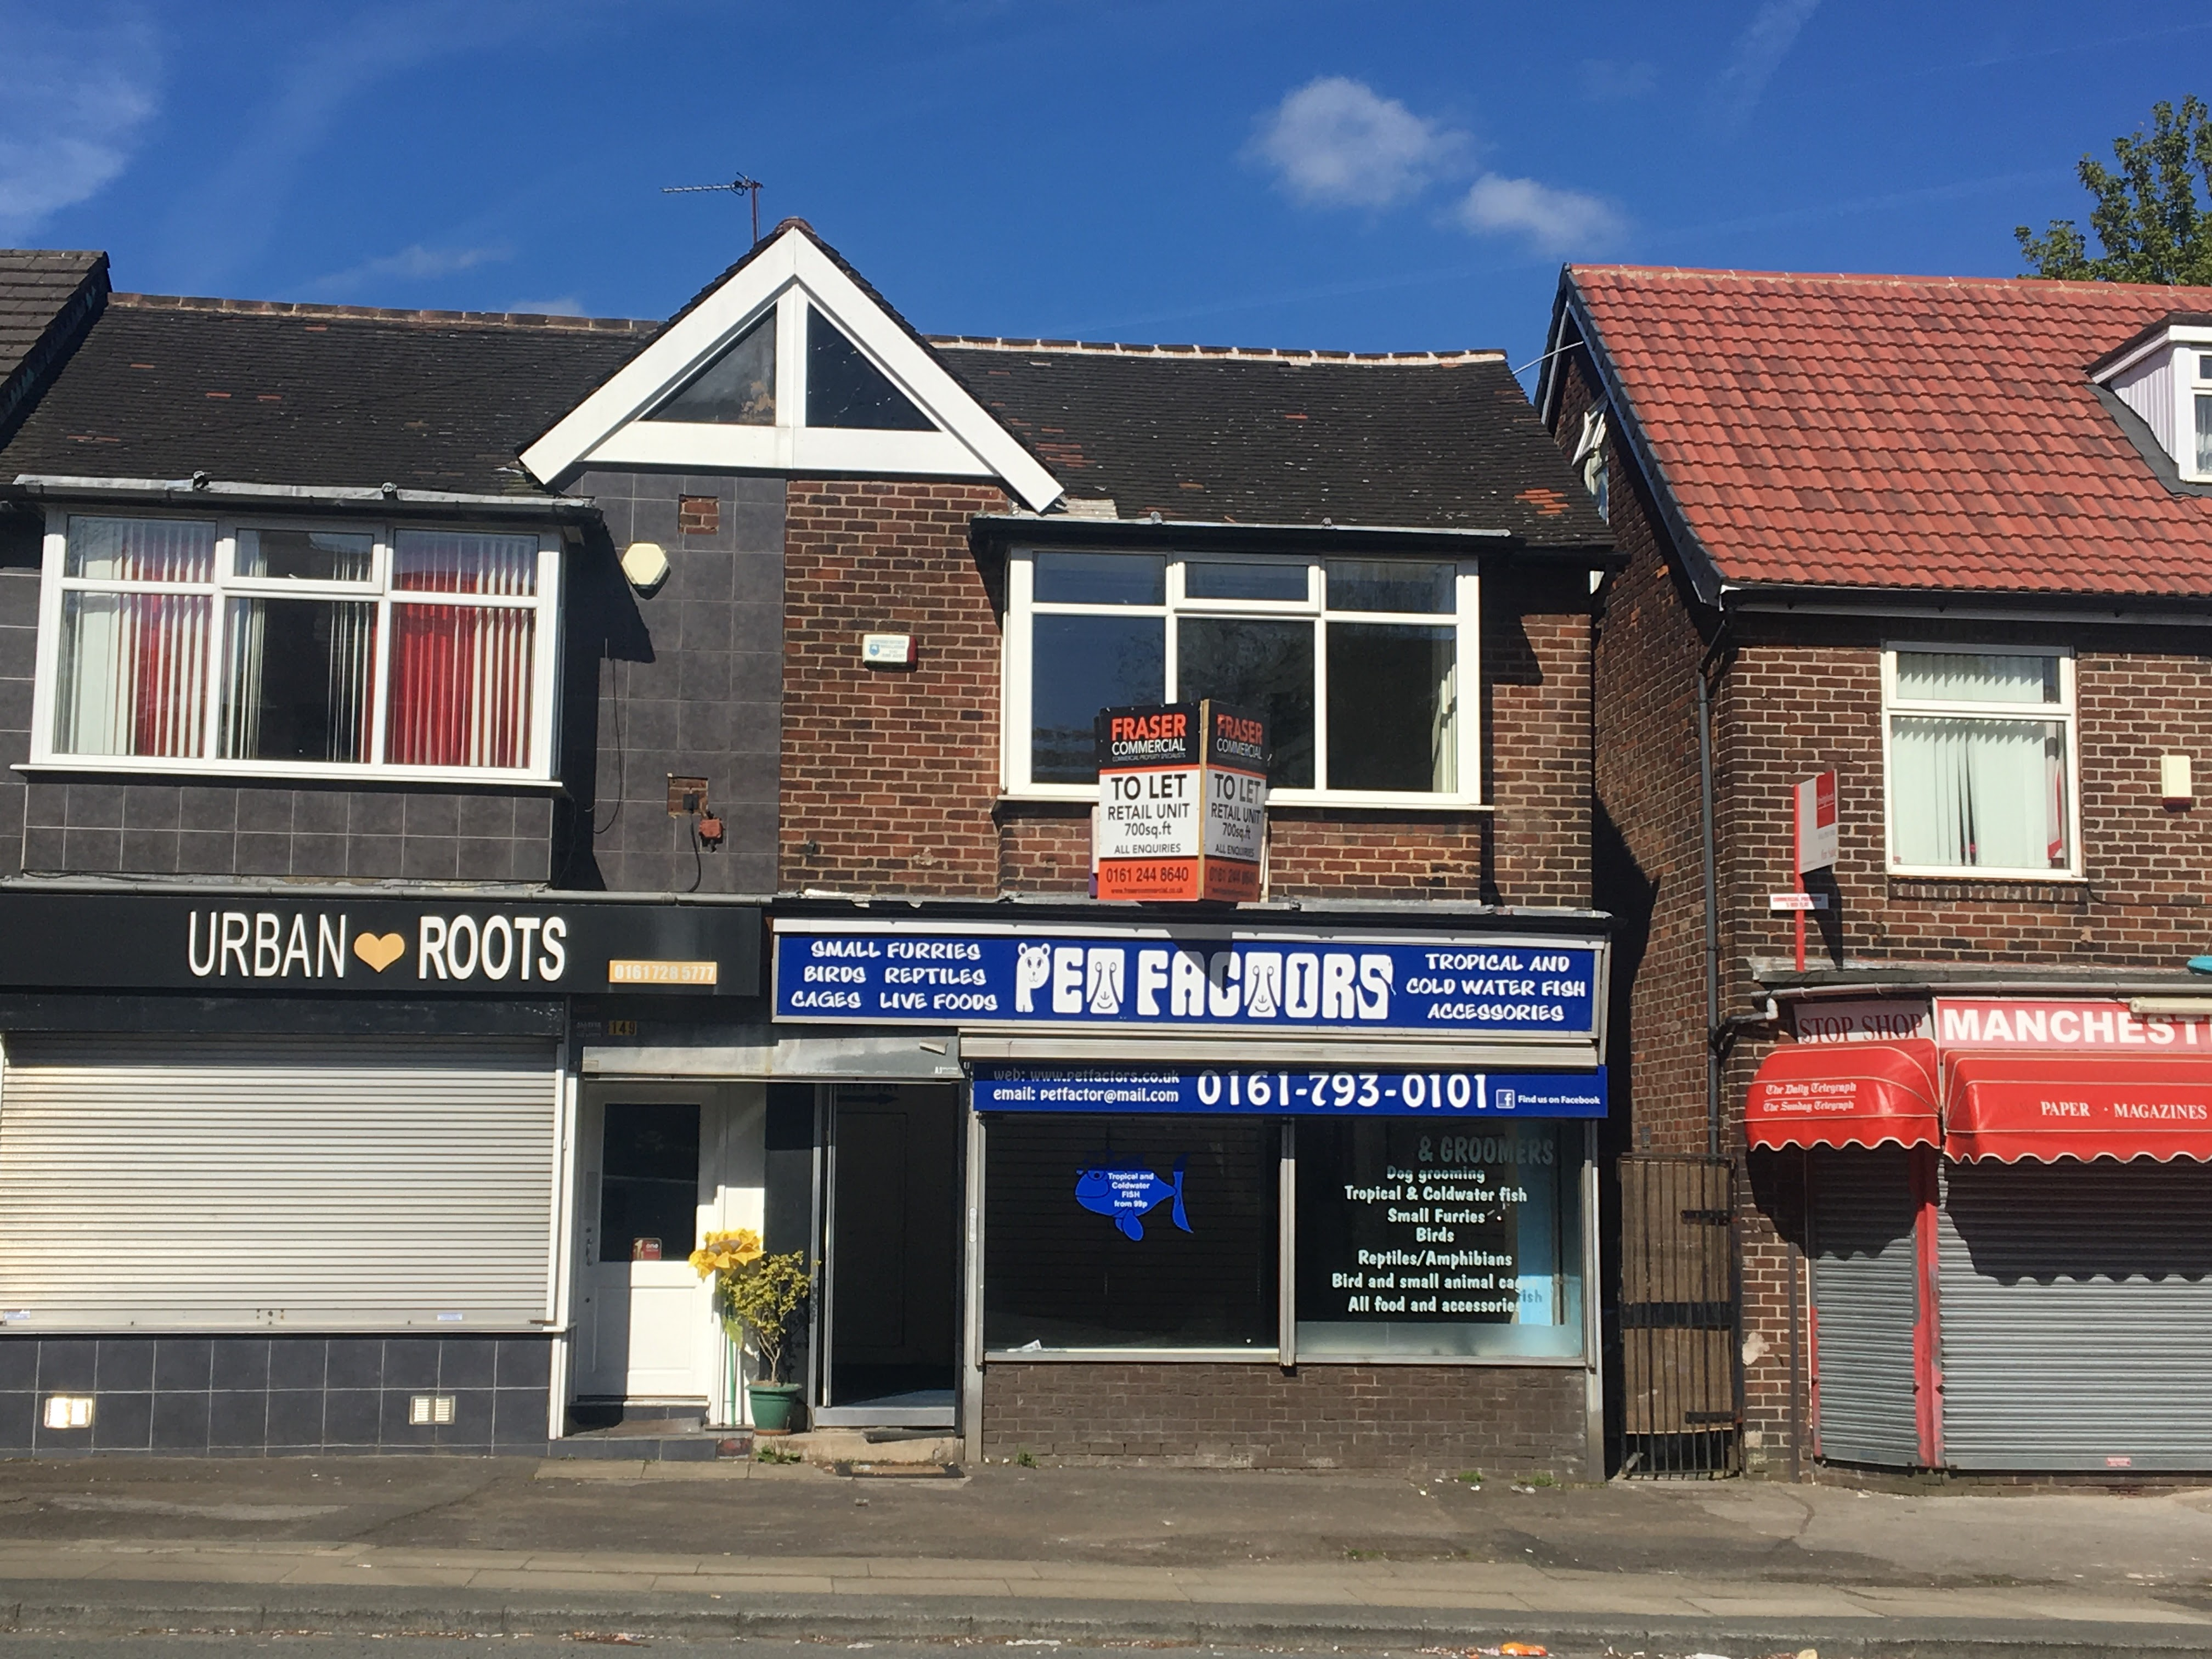 147 MANCHESTER ROAD, SWINTON, MANCHESTER M27 4FH